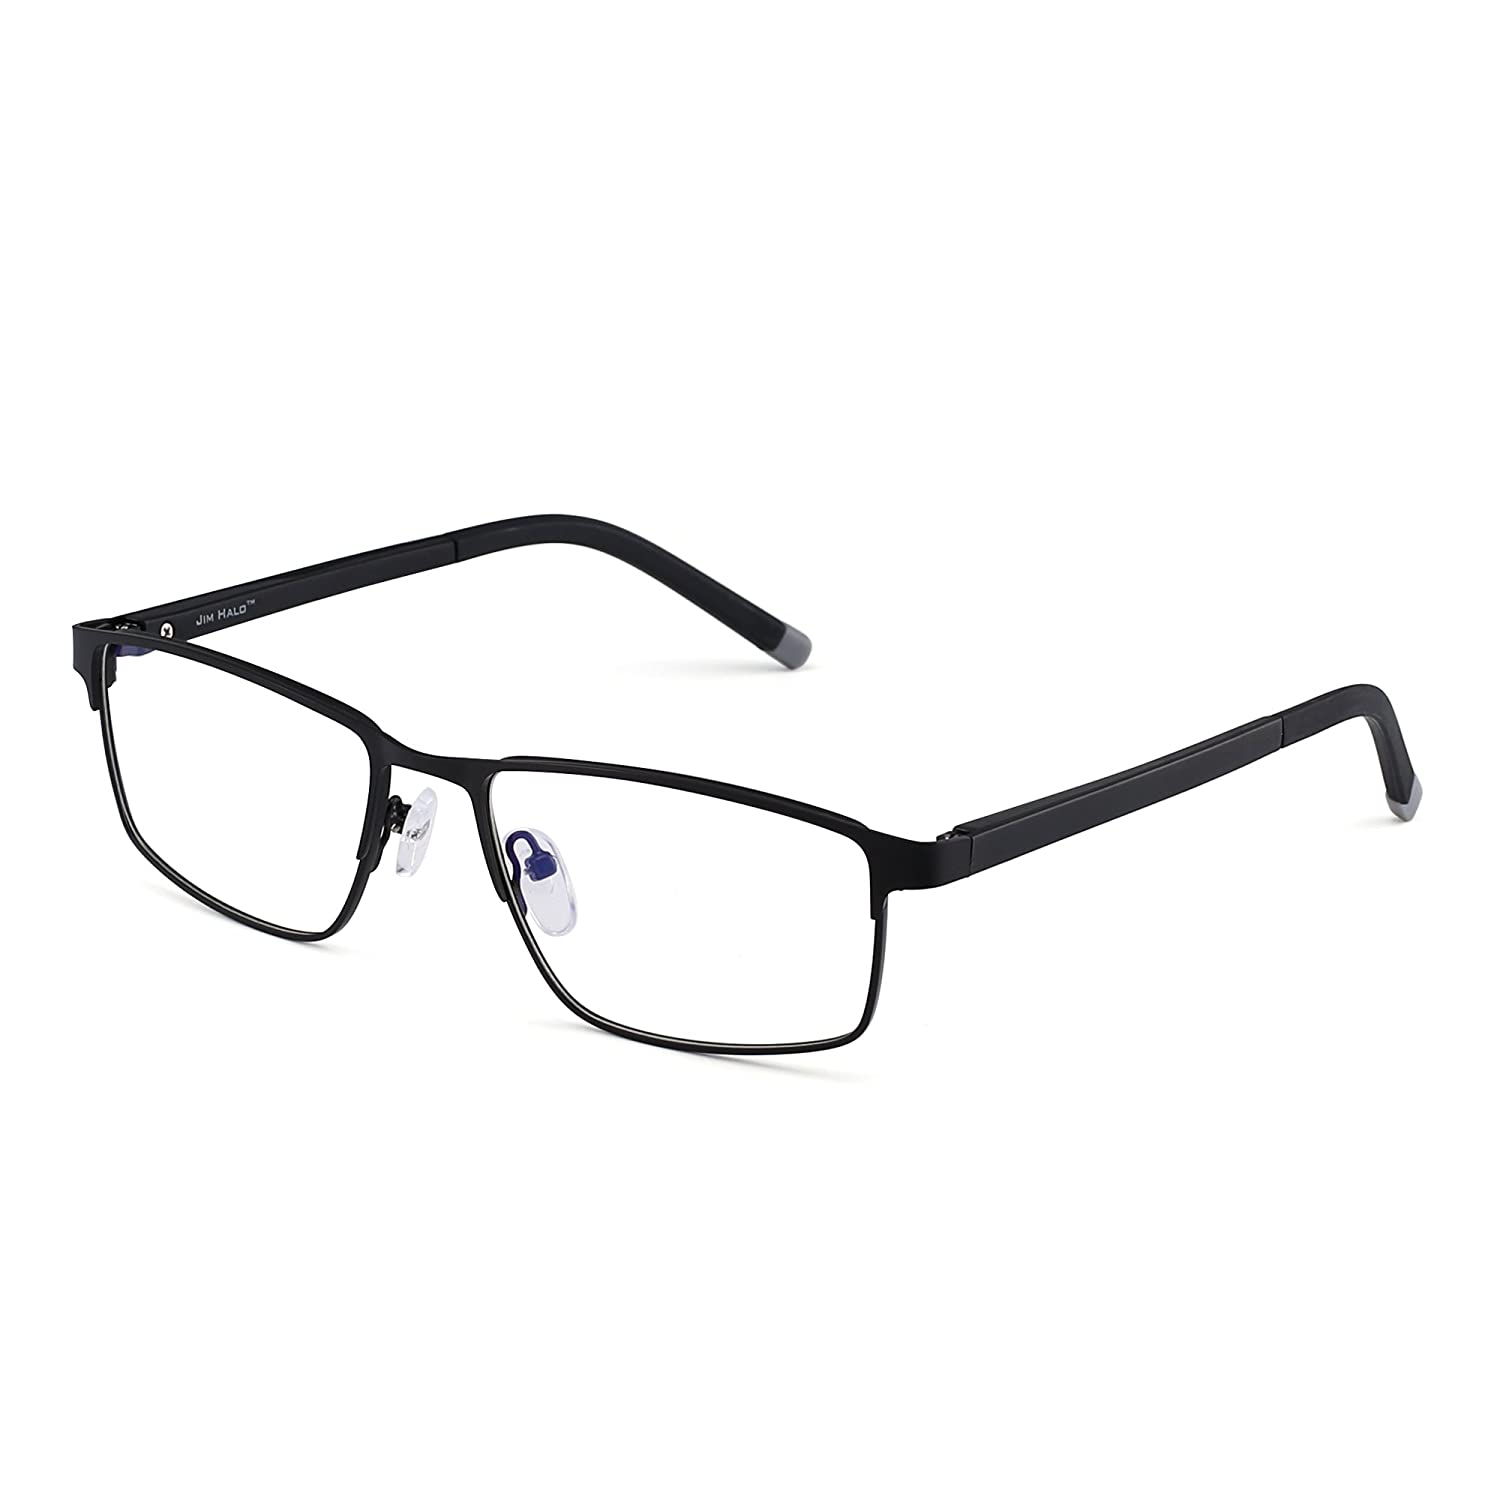 9a0b43ad6a3 Amazon.com  Rectangle Optical Frame Glasses Spring Hinge Metal RX-able Eyeglasses  Clear Lens (Black Clear)  Clothing